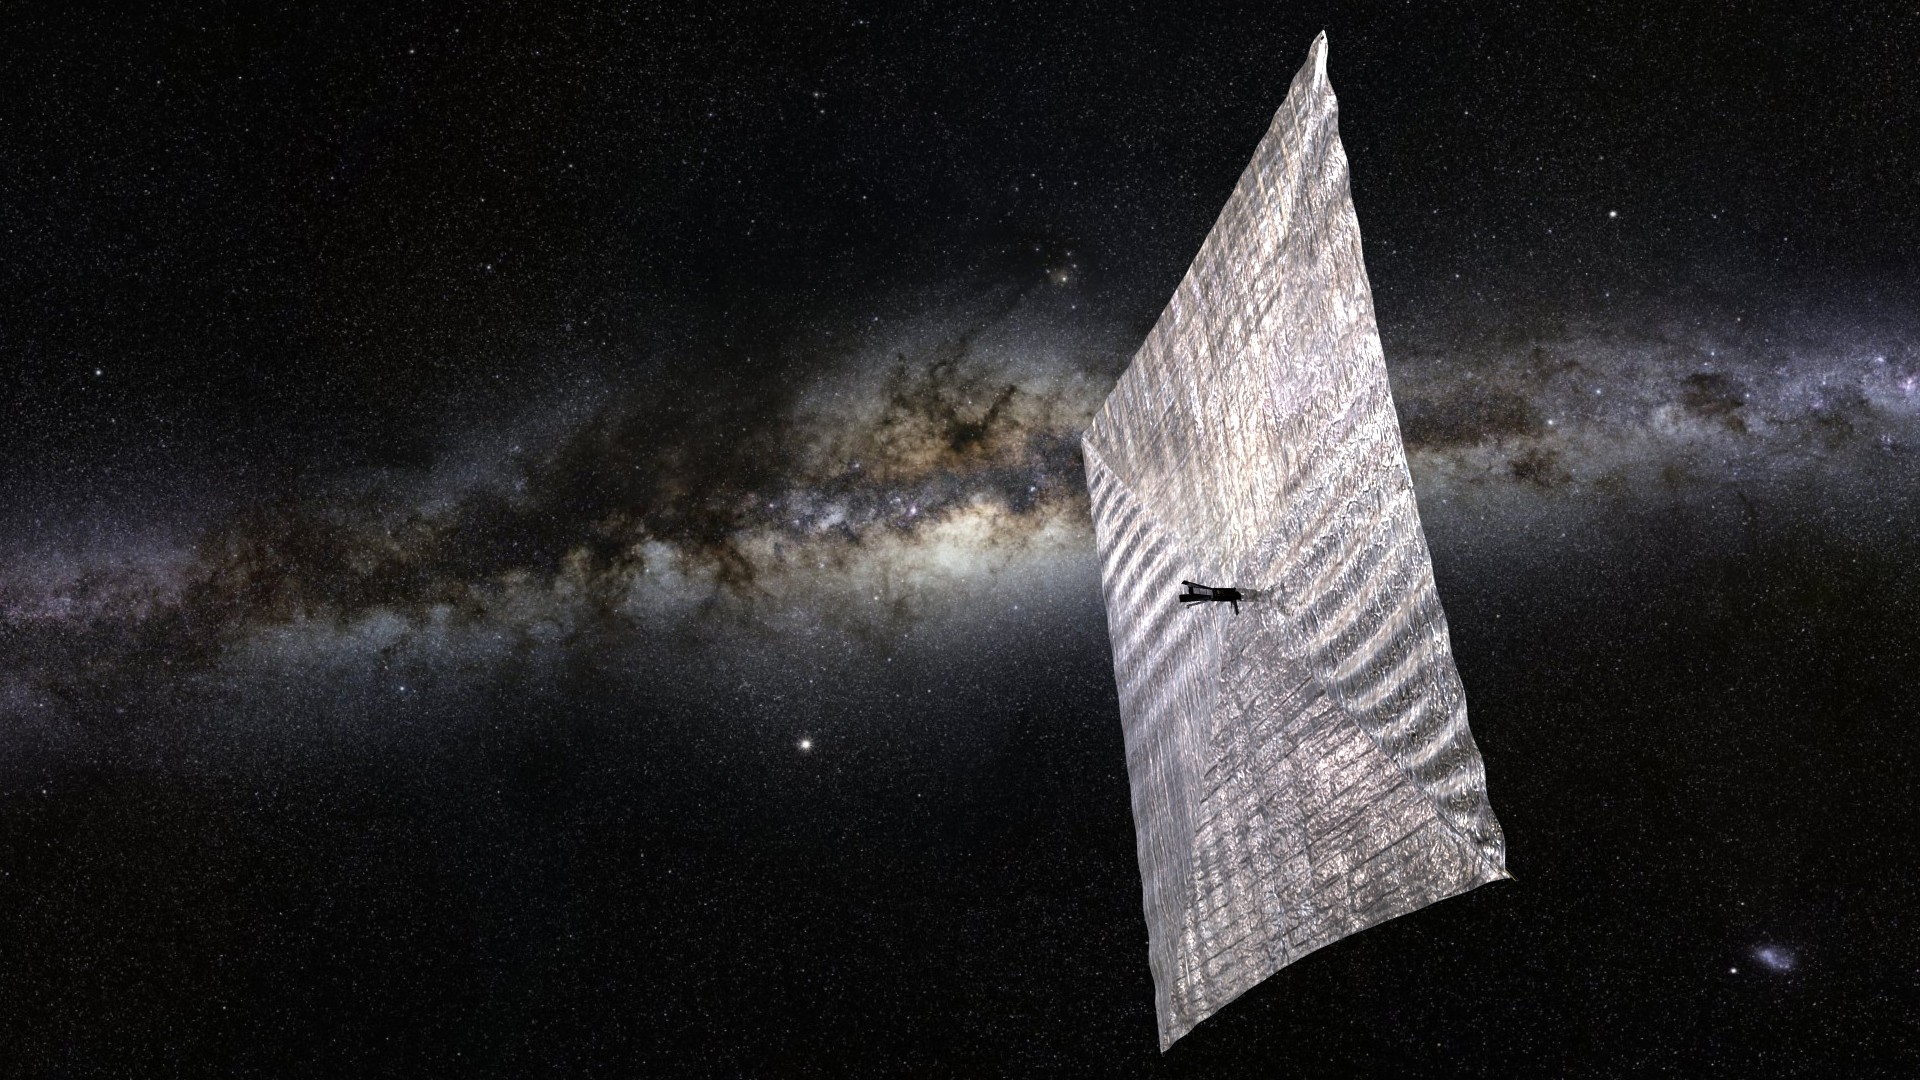 The LightSail Satellite Successfully Deployed Its Solar Sail